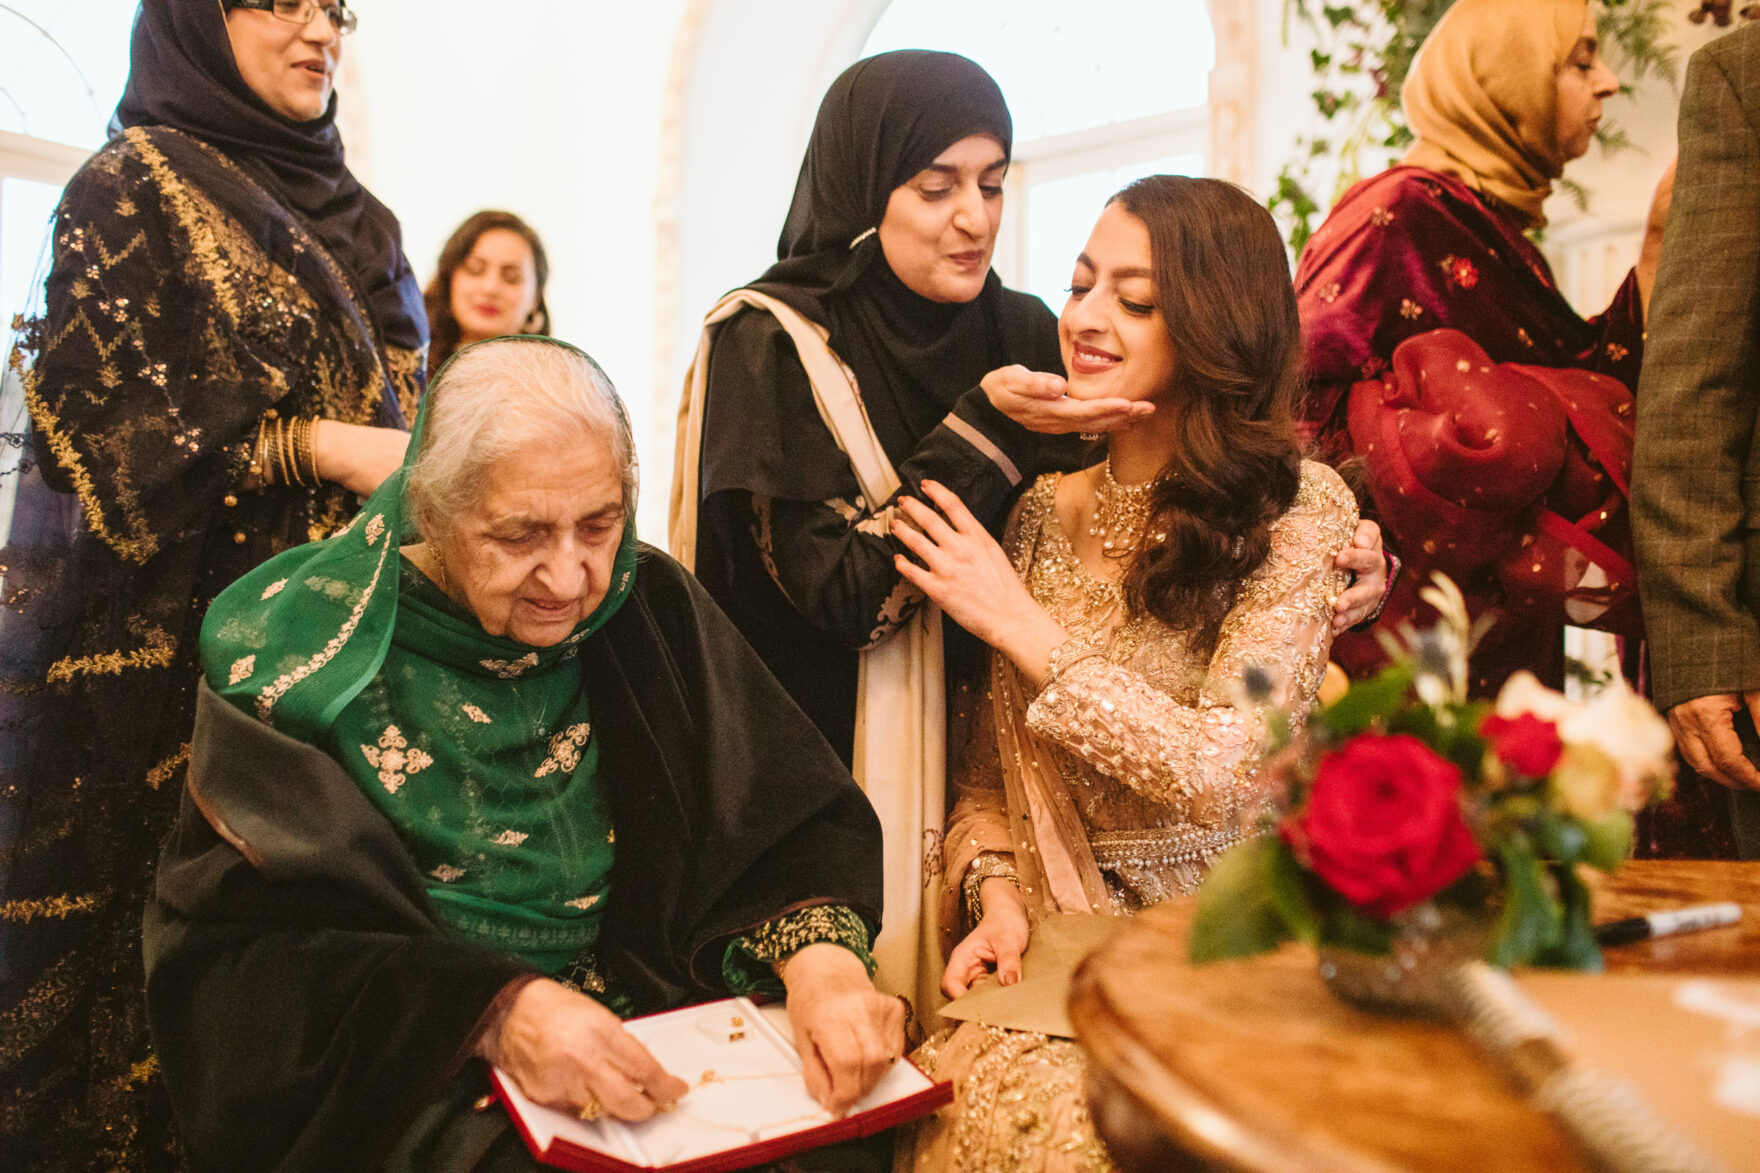 Islamic Bride at a London Nikkah Wedding with her guests